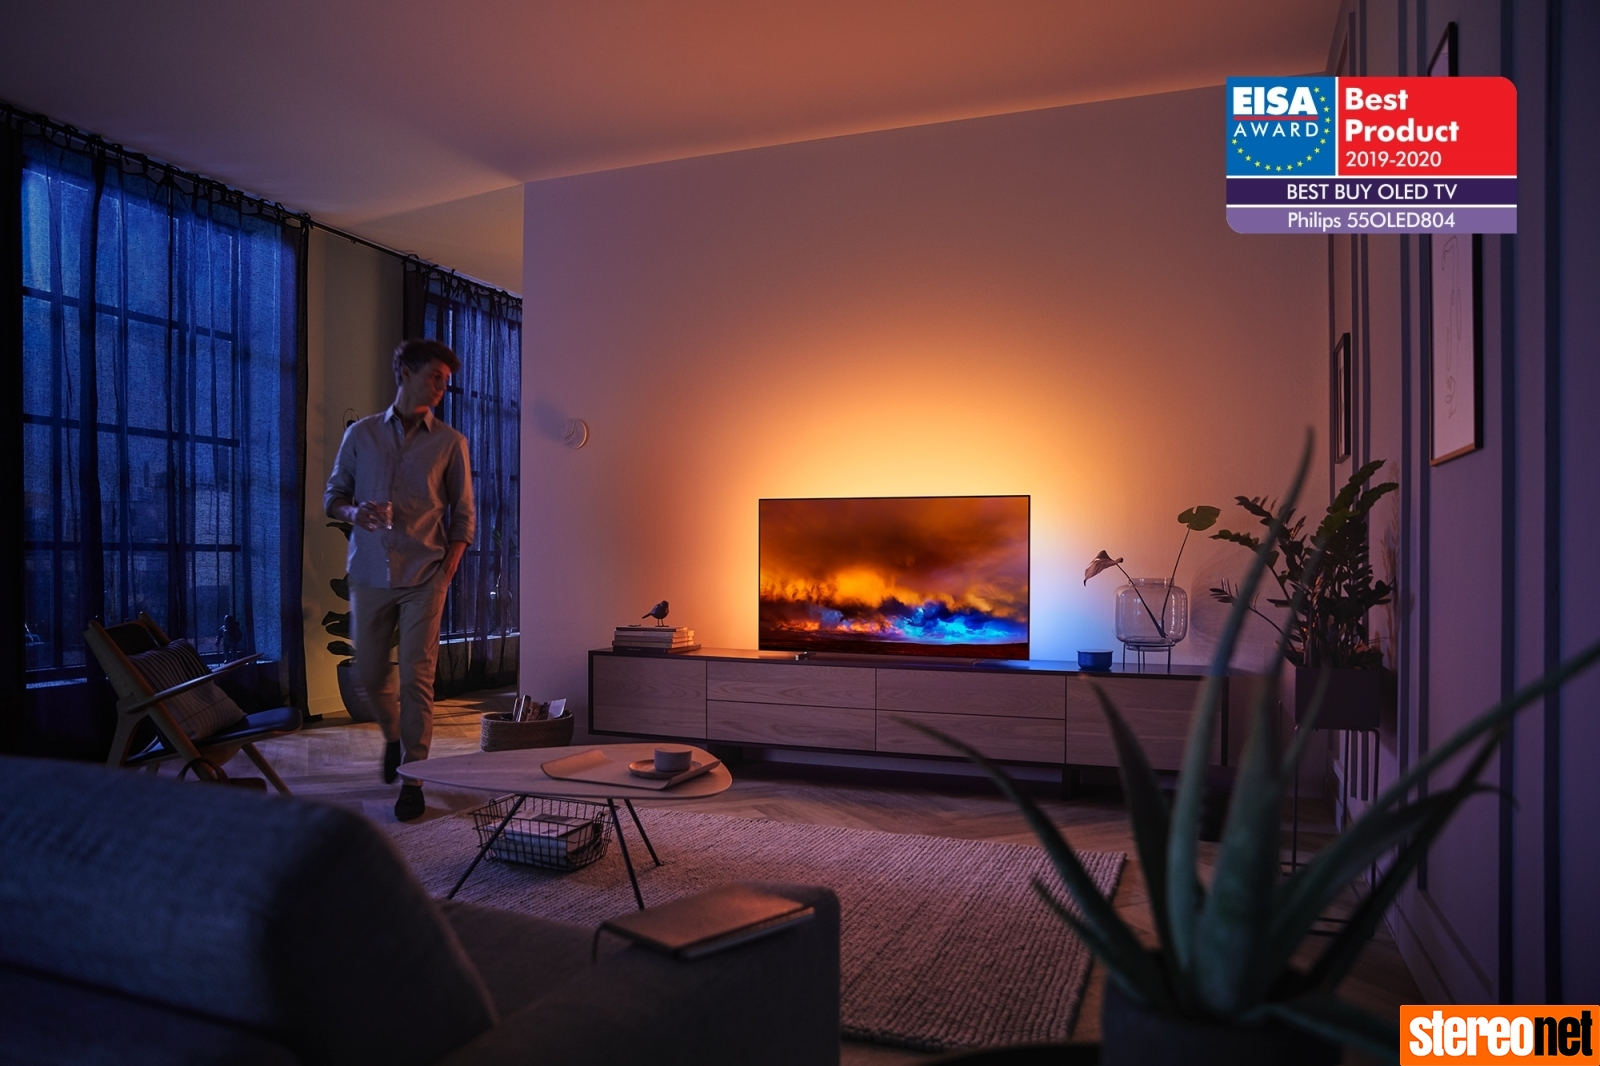 Philips OLED TV EISA Awards